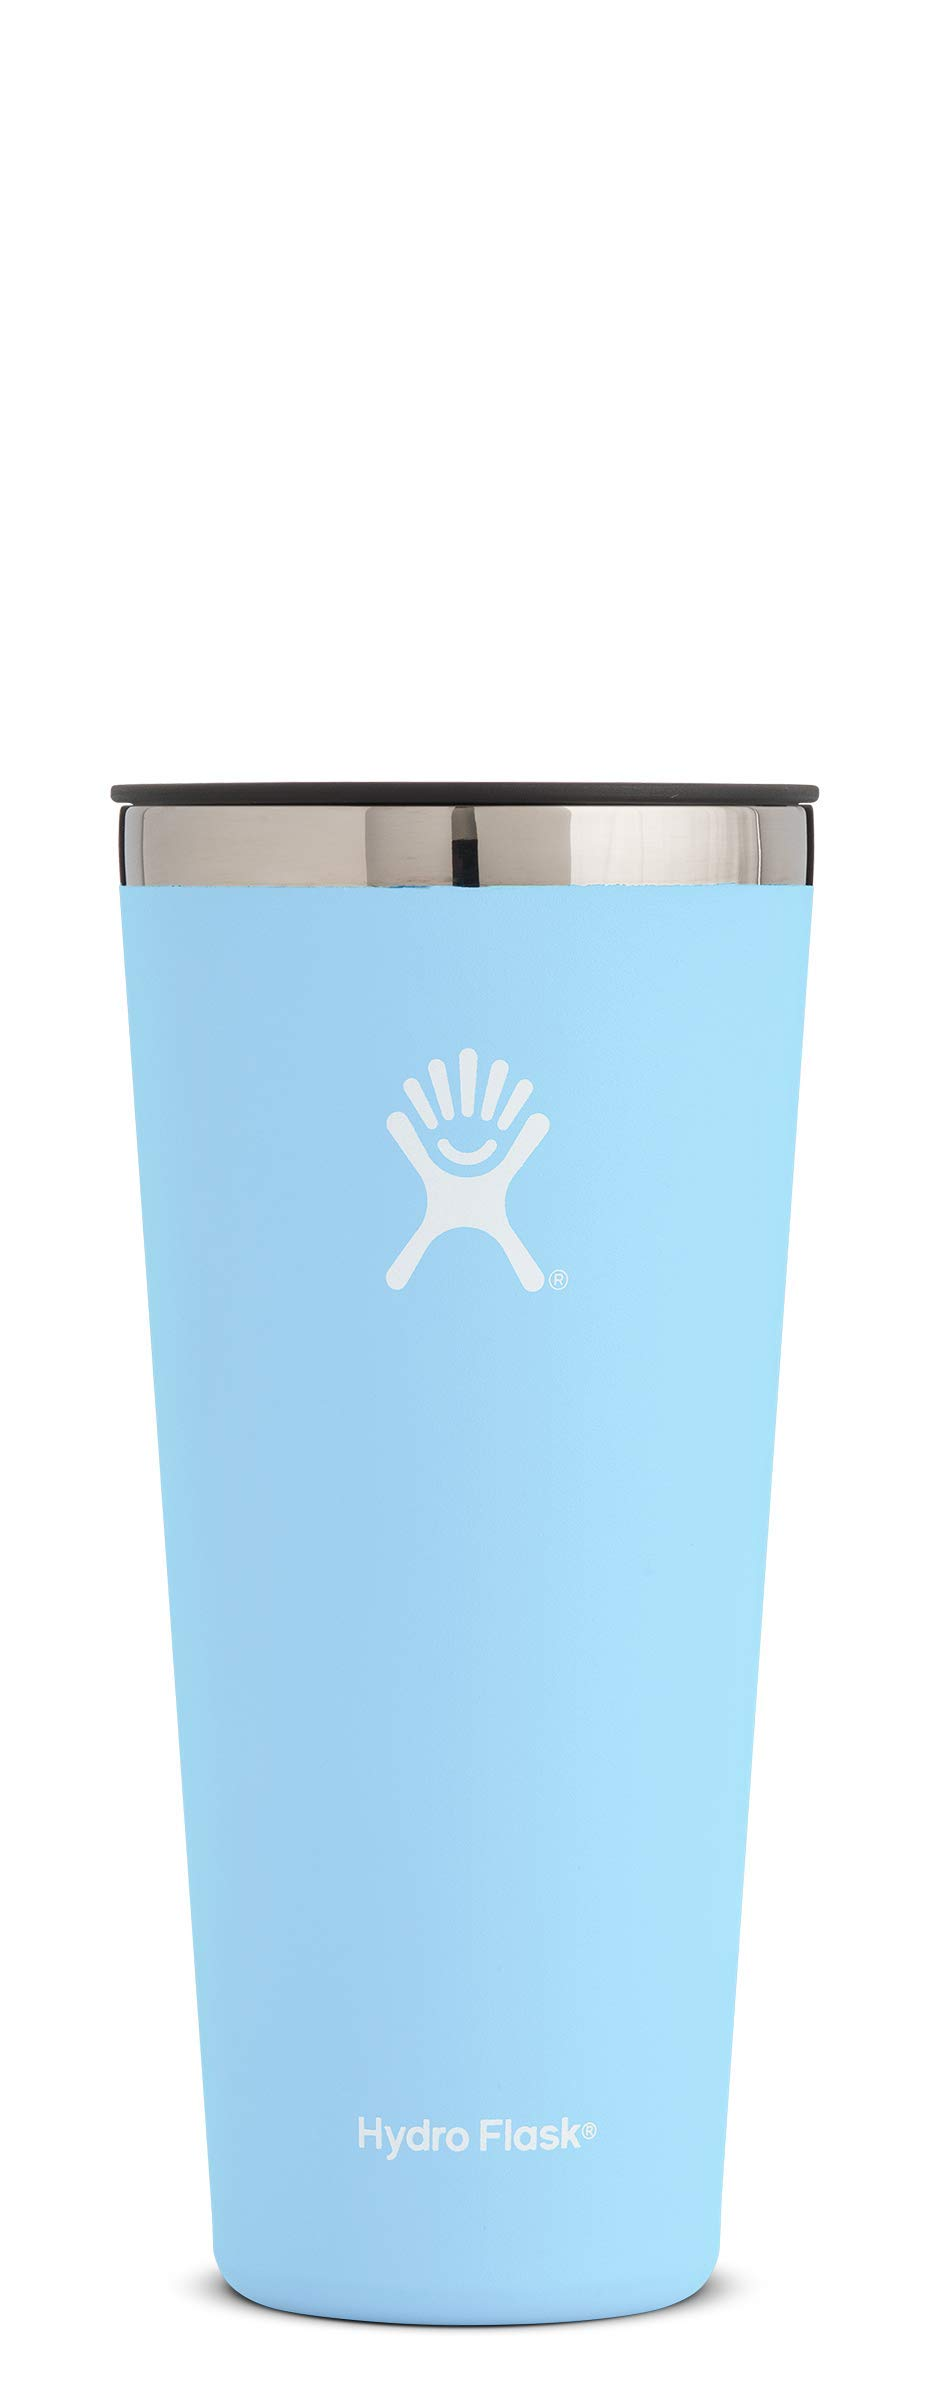 Hydro Flask 32 oz Tumbler Cup - Stainless Steel & Vacuum Insulated - Press-In Lid - Frost